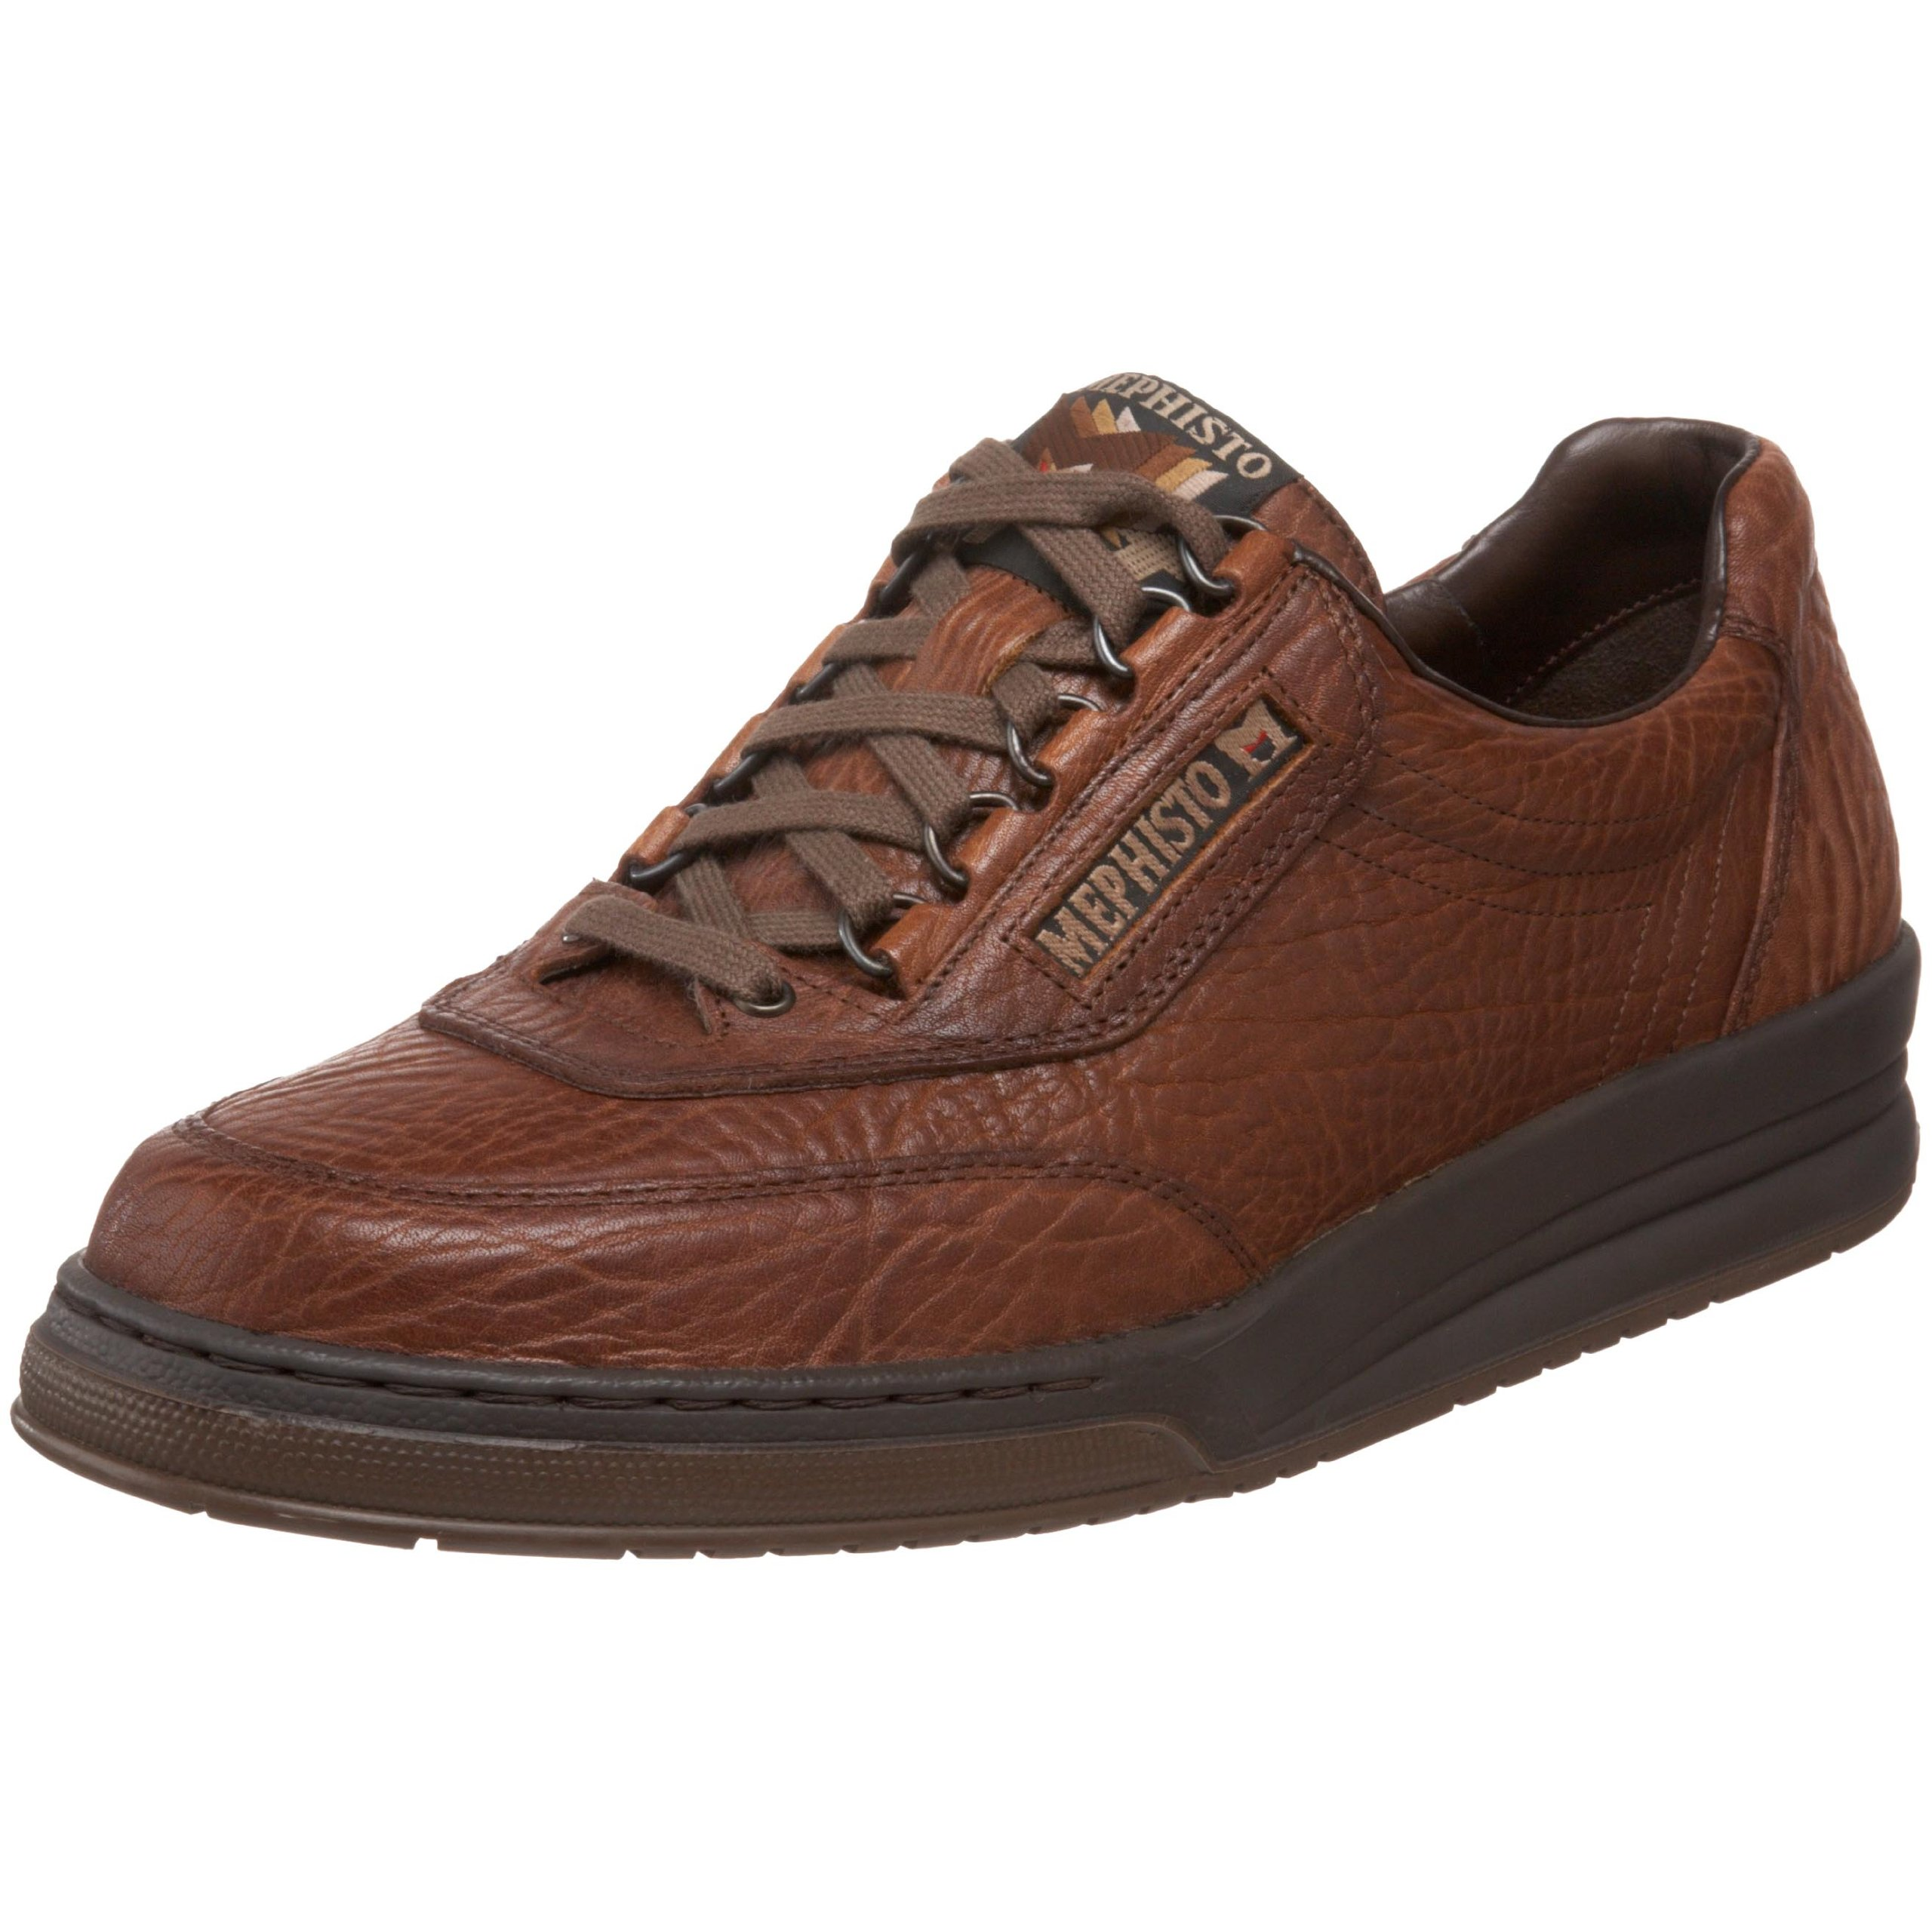 Mephisto Match Oxfords Shoes Grain